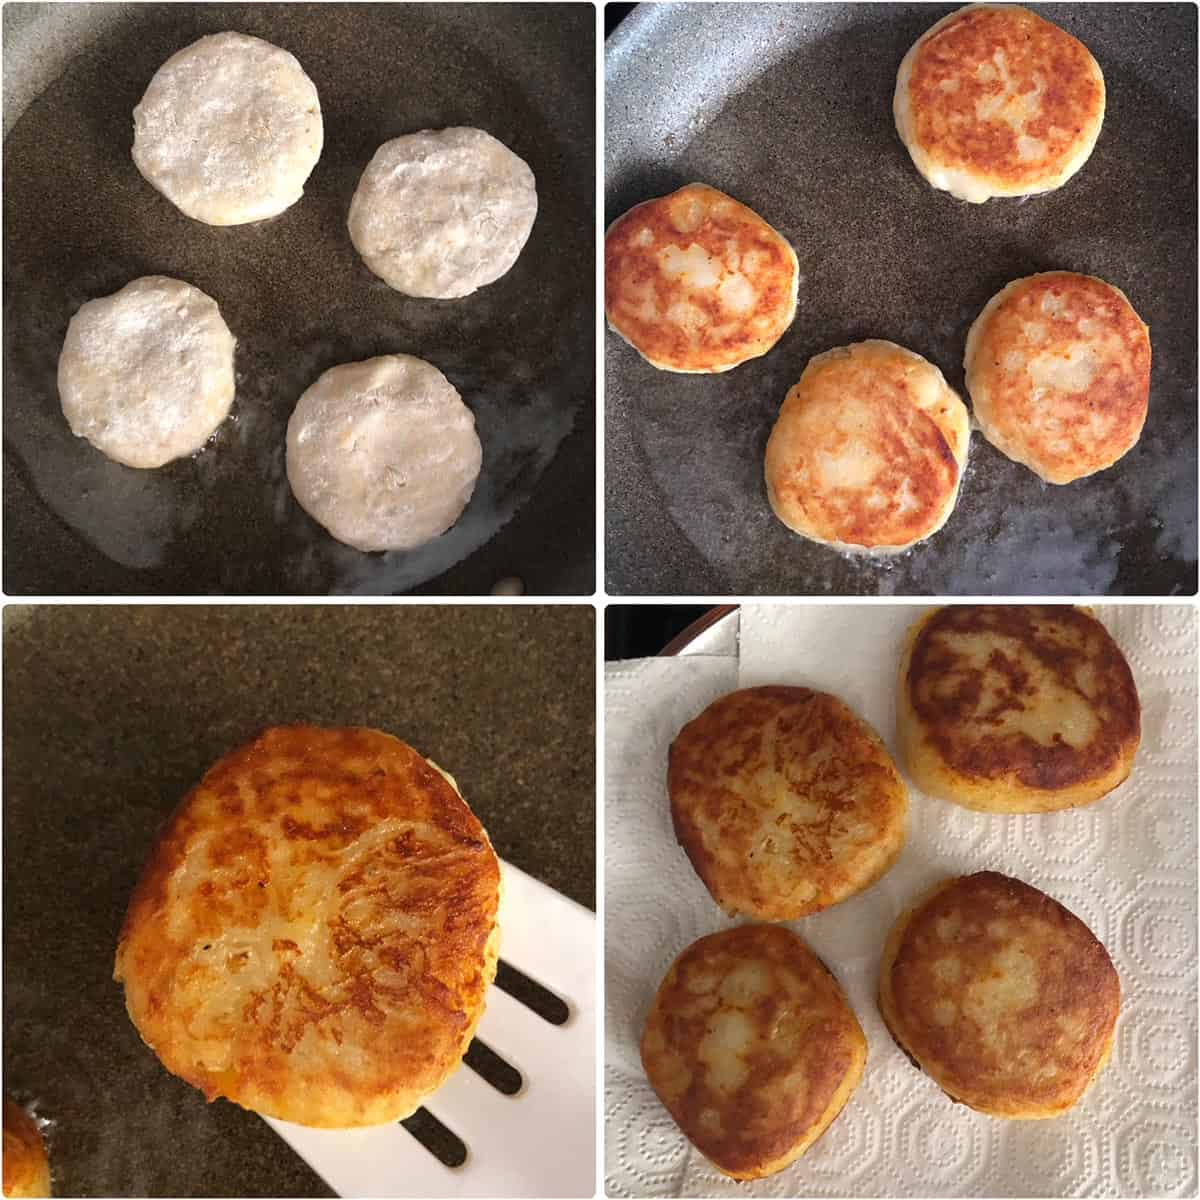 Cooking patties in oil until golden and crispy